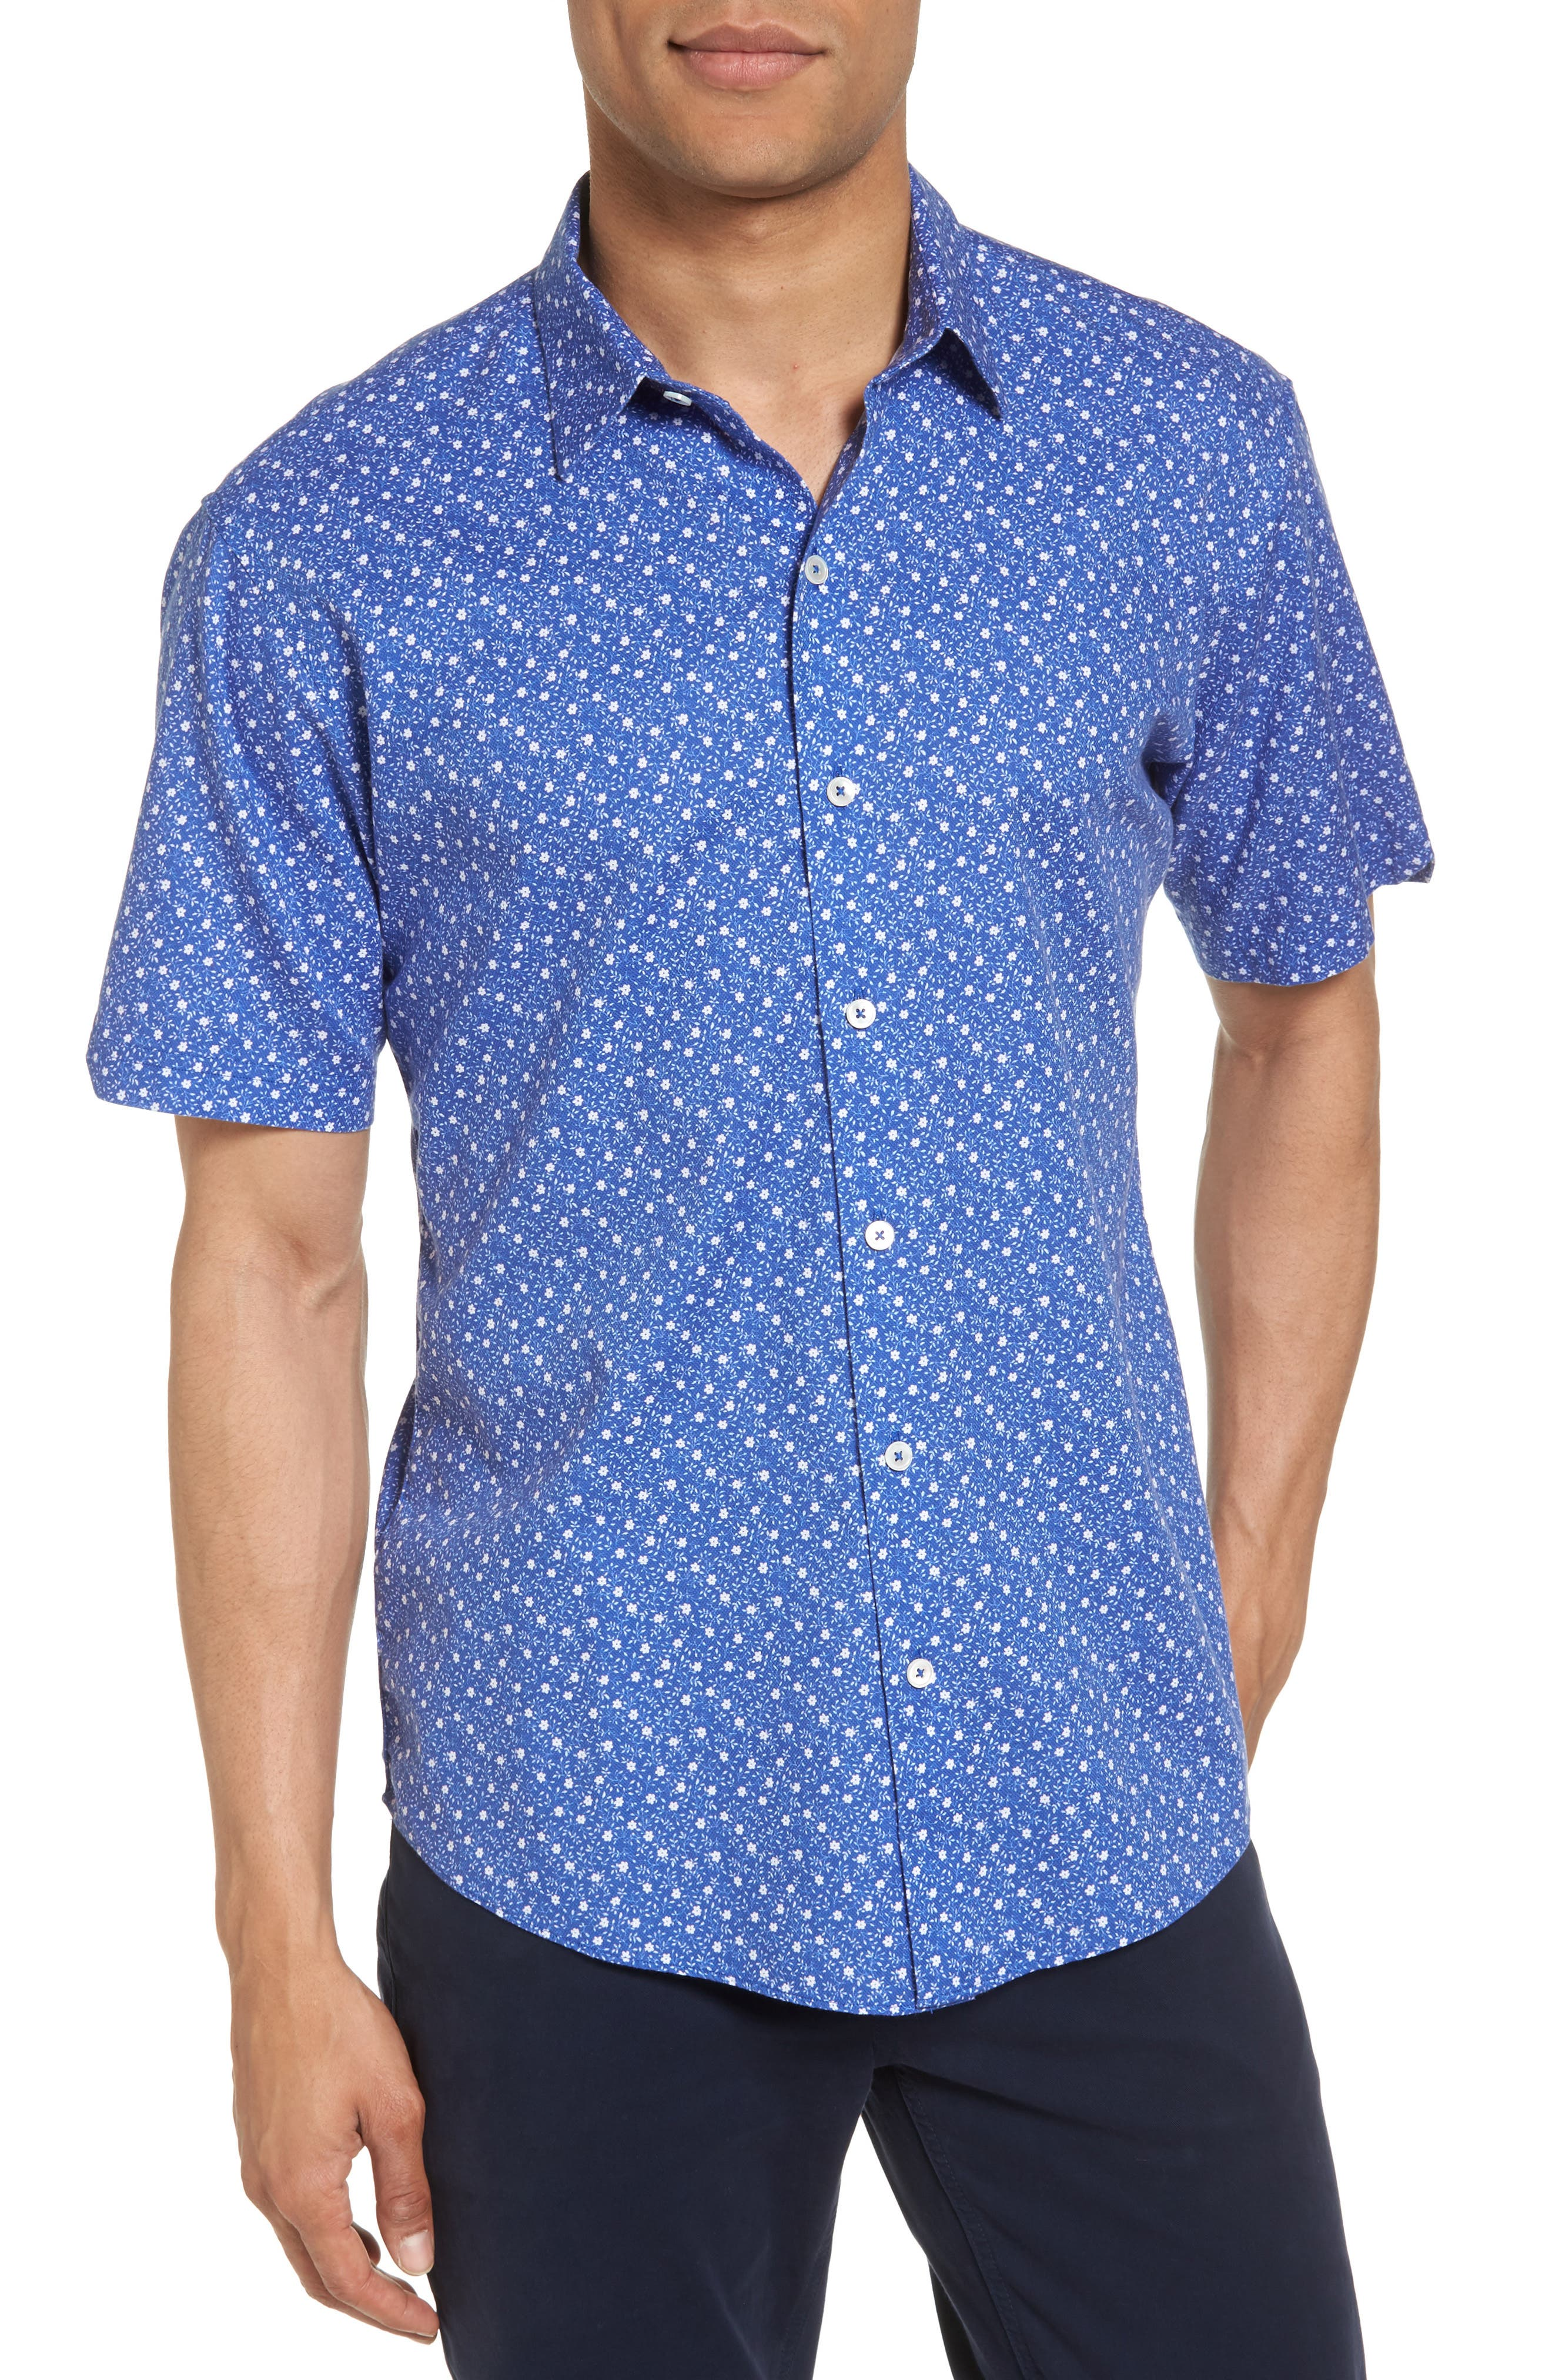 Alternate Image 1 Selected - Zachary Prell Floral Print Short Sleeve Sport Shirt